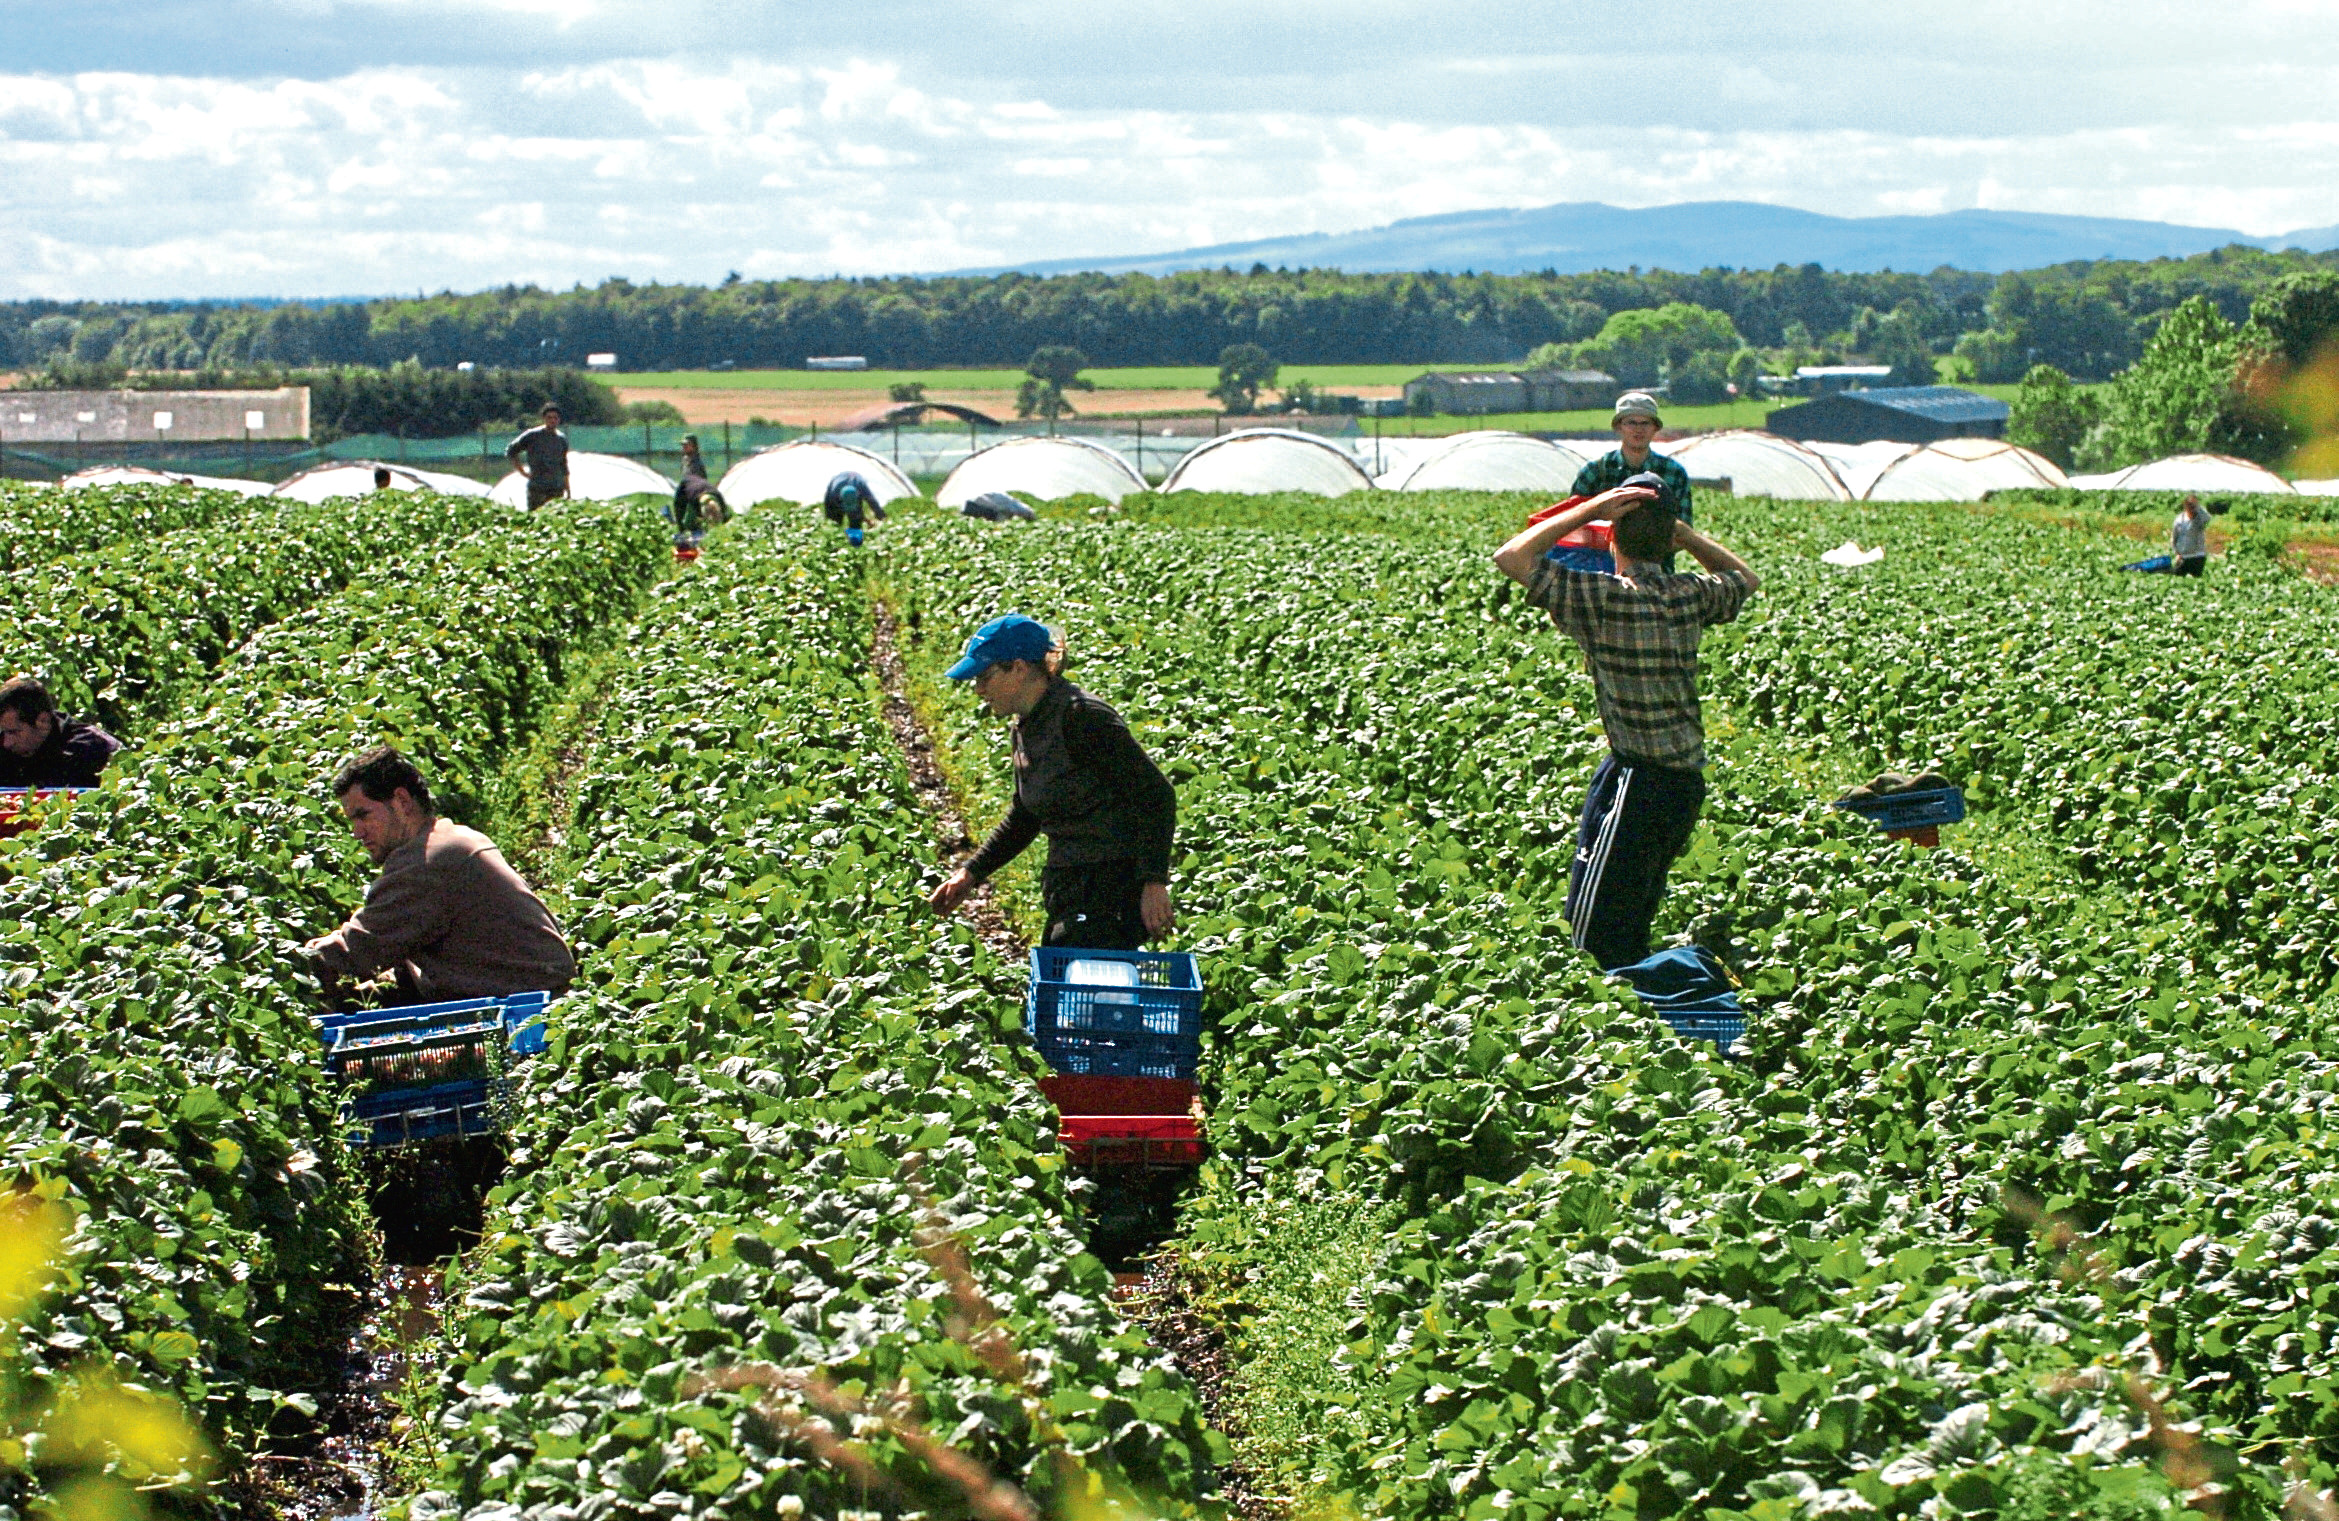 The committee will assess the impact of the immigration proposals on the food and farming sectors.